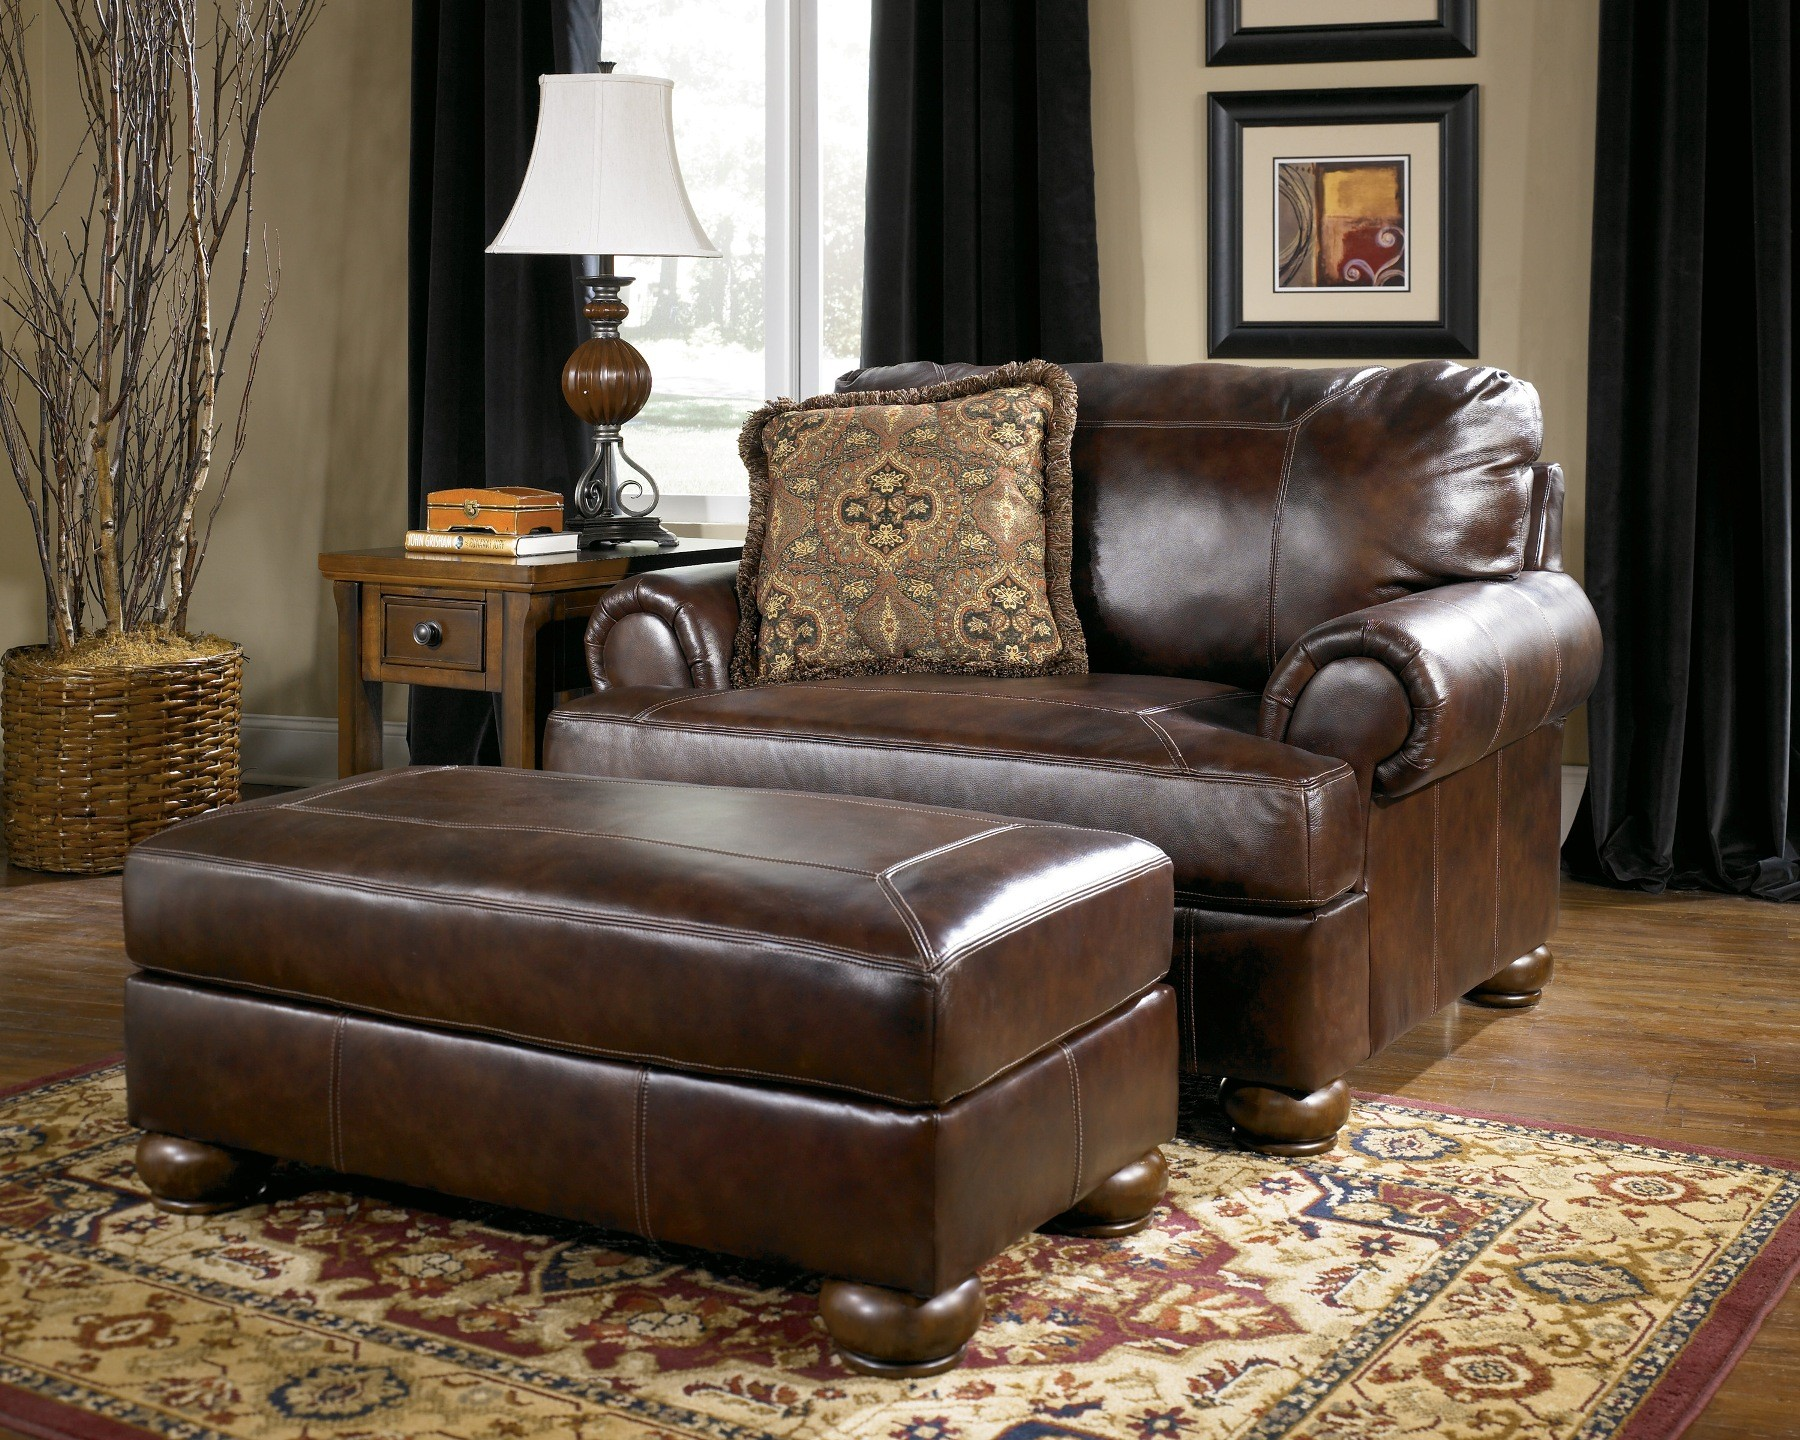 Walnut Living Room Furniture Axiom Walnut Living Room Set From Ashley 42000 Coleman Furniture